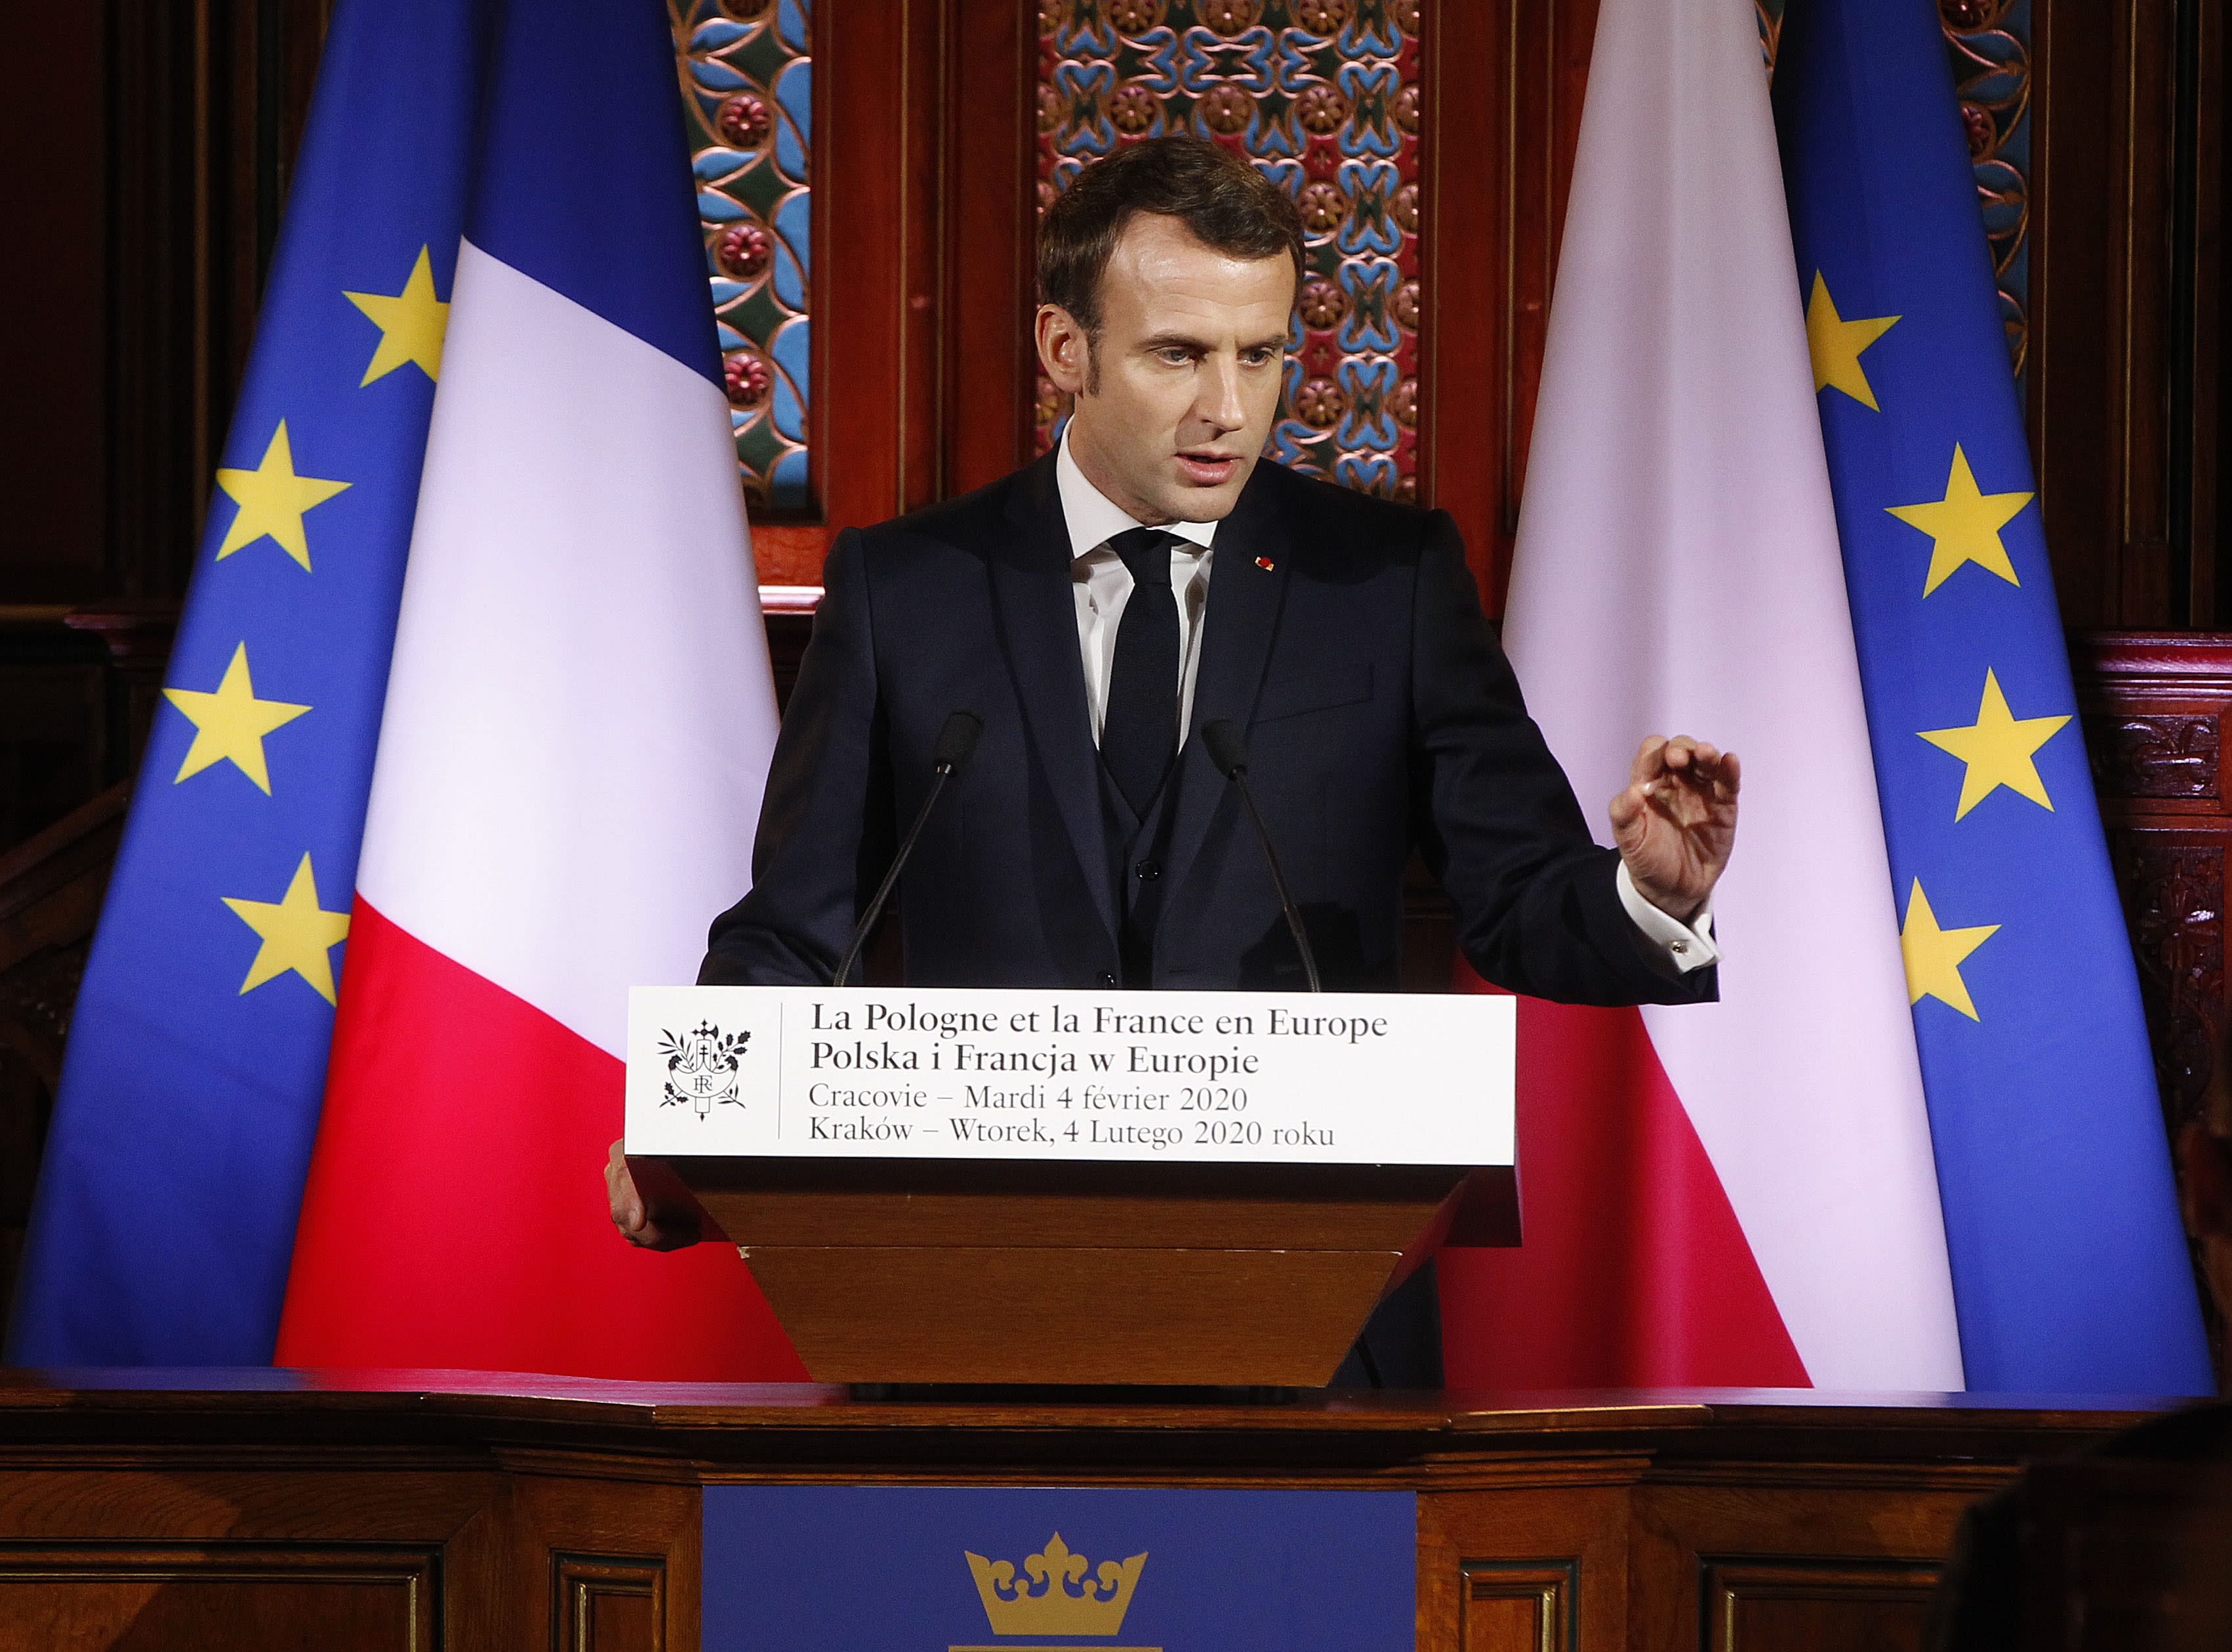 French President Emmanuel Macron delivers a speech to students and intellectuals at the Jagiellonian University for a lecture on the future of a united Europe in Krakow, Poland, Tuesday, Feb. 4, 2020.(AP Photo/Czarek Sokolowski)